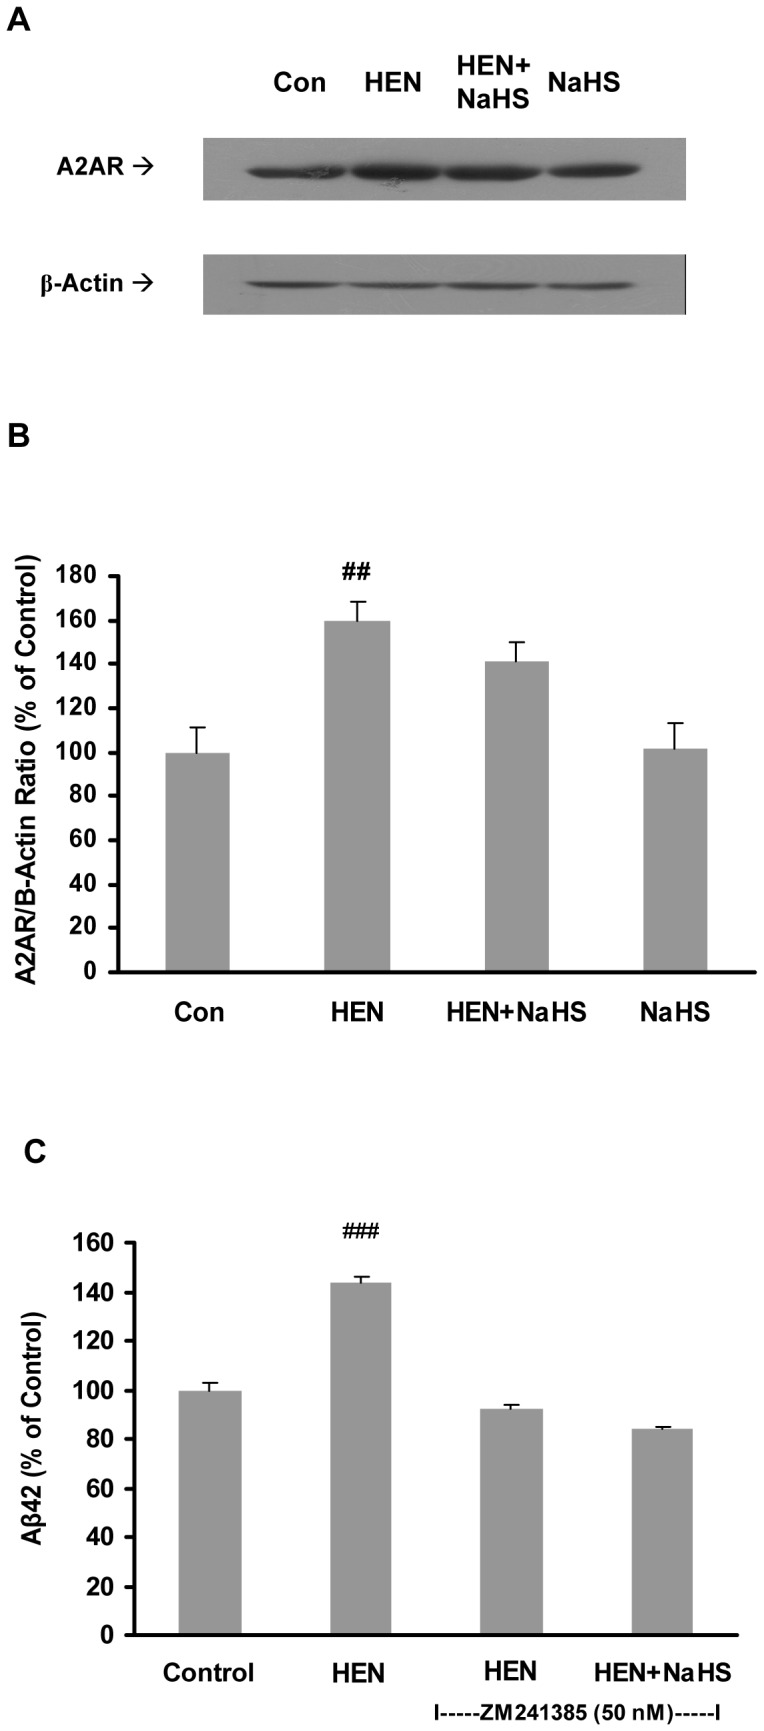 Effect of NaHS on expression of A2A receptors. A–B : Representative gels (A) and histogram (B) demonstrating the effect of pretreatment with NaHS (100 µM, 12 hours) did not attenuate the effects of HENECA (100 nM, 24 hours) on protein expression of A2A receptor. C : Effect of NaHS (100 µM) on production of Aβ42 in cells pre-treated with A2A receptor antagonist, ZM 241385 (50 nM). Control values were adjusted to 100%. Data are given as means ± S.E.M, n = 4–6. ## p